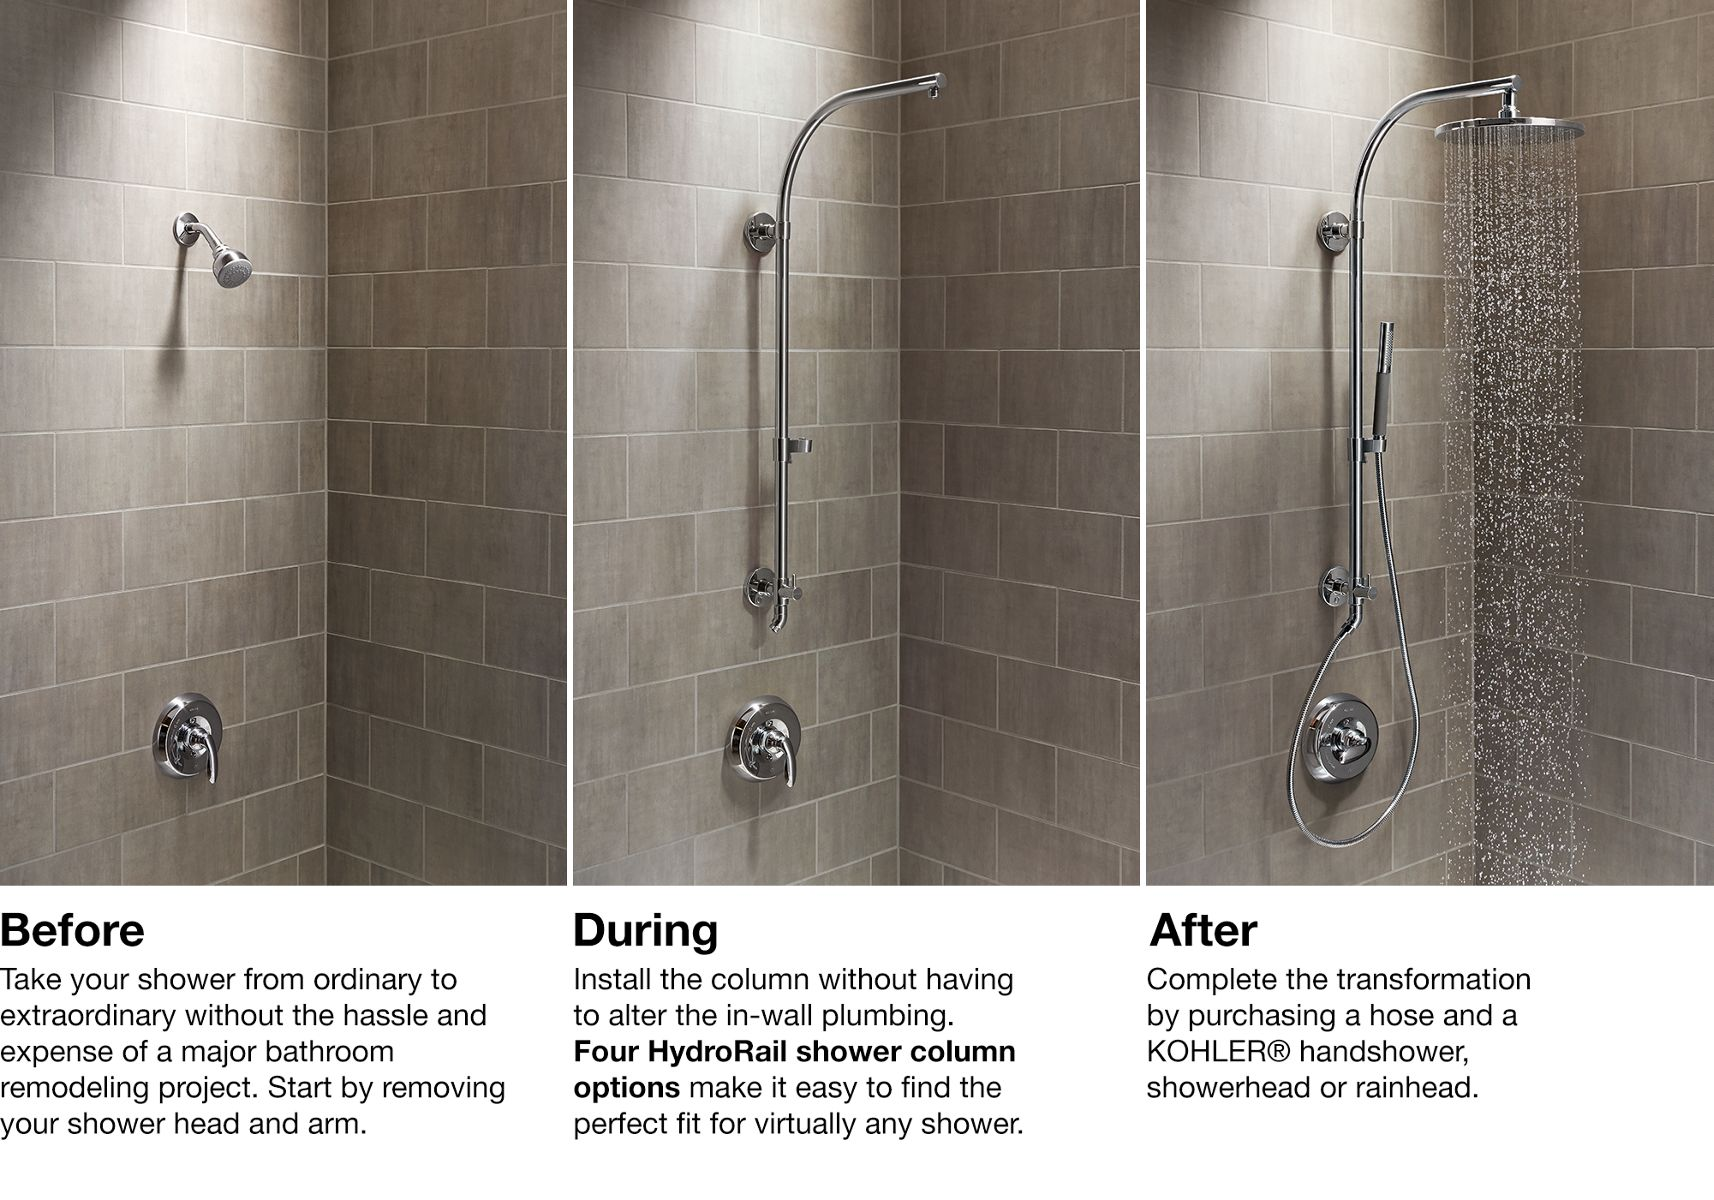 HydroRail® Shower Columns